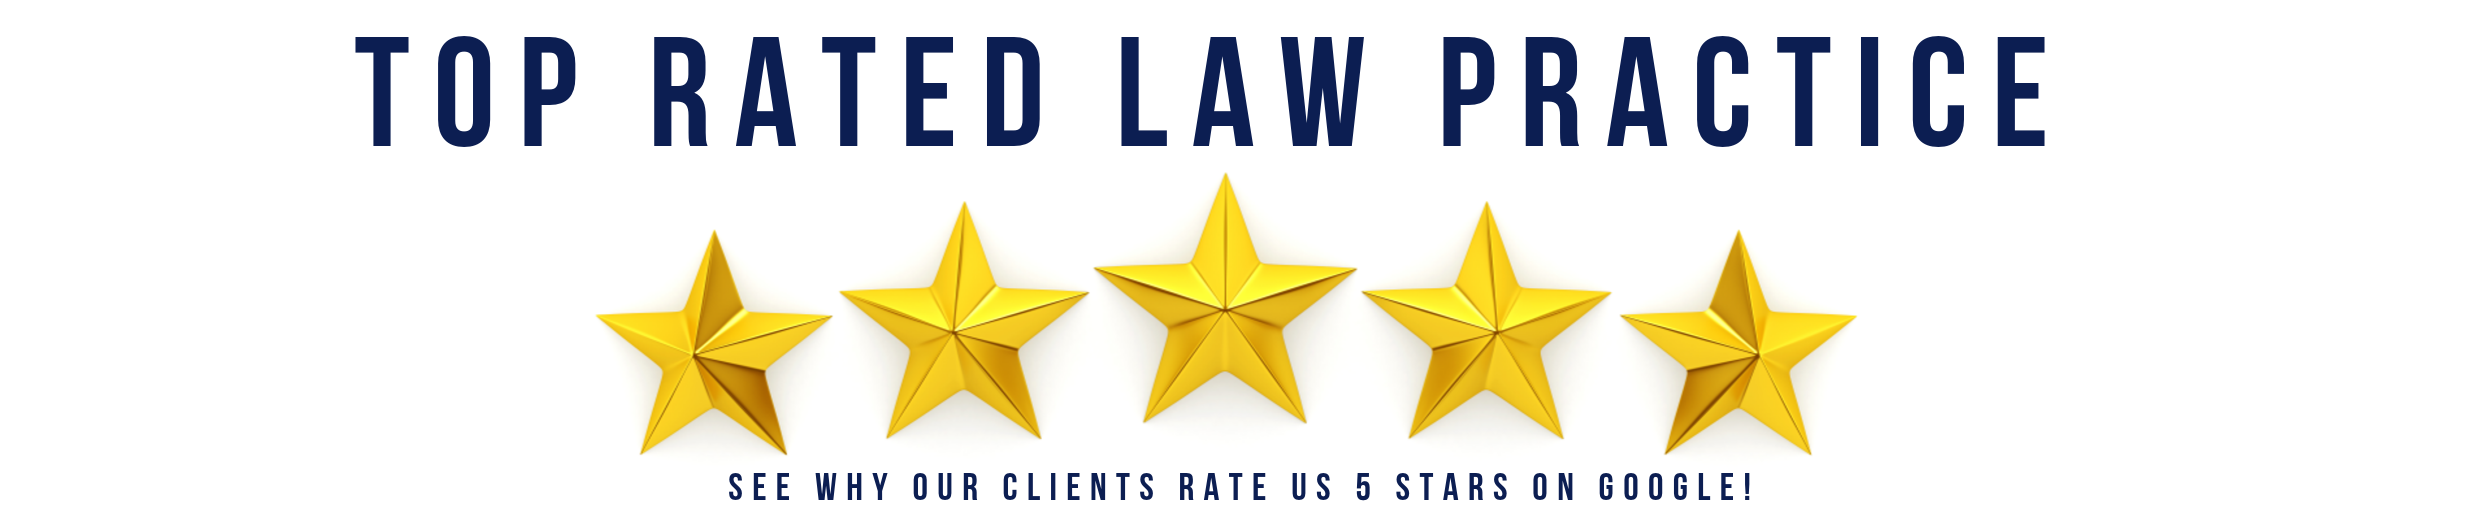 jarvis-law-family-traffic-dwi-criminal-defense-google-rating-charlotte-nc.png